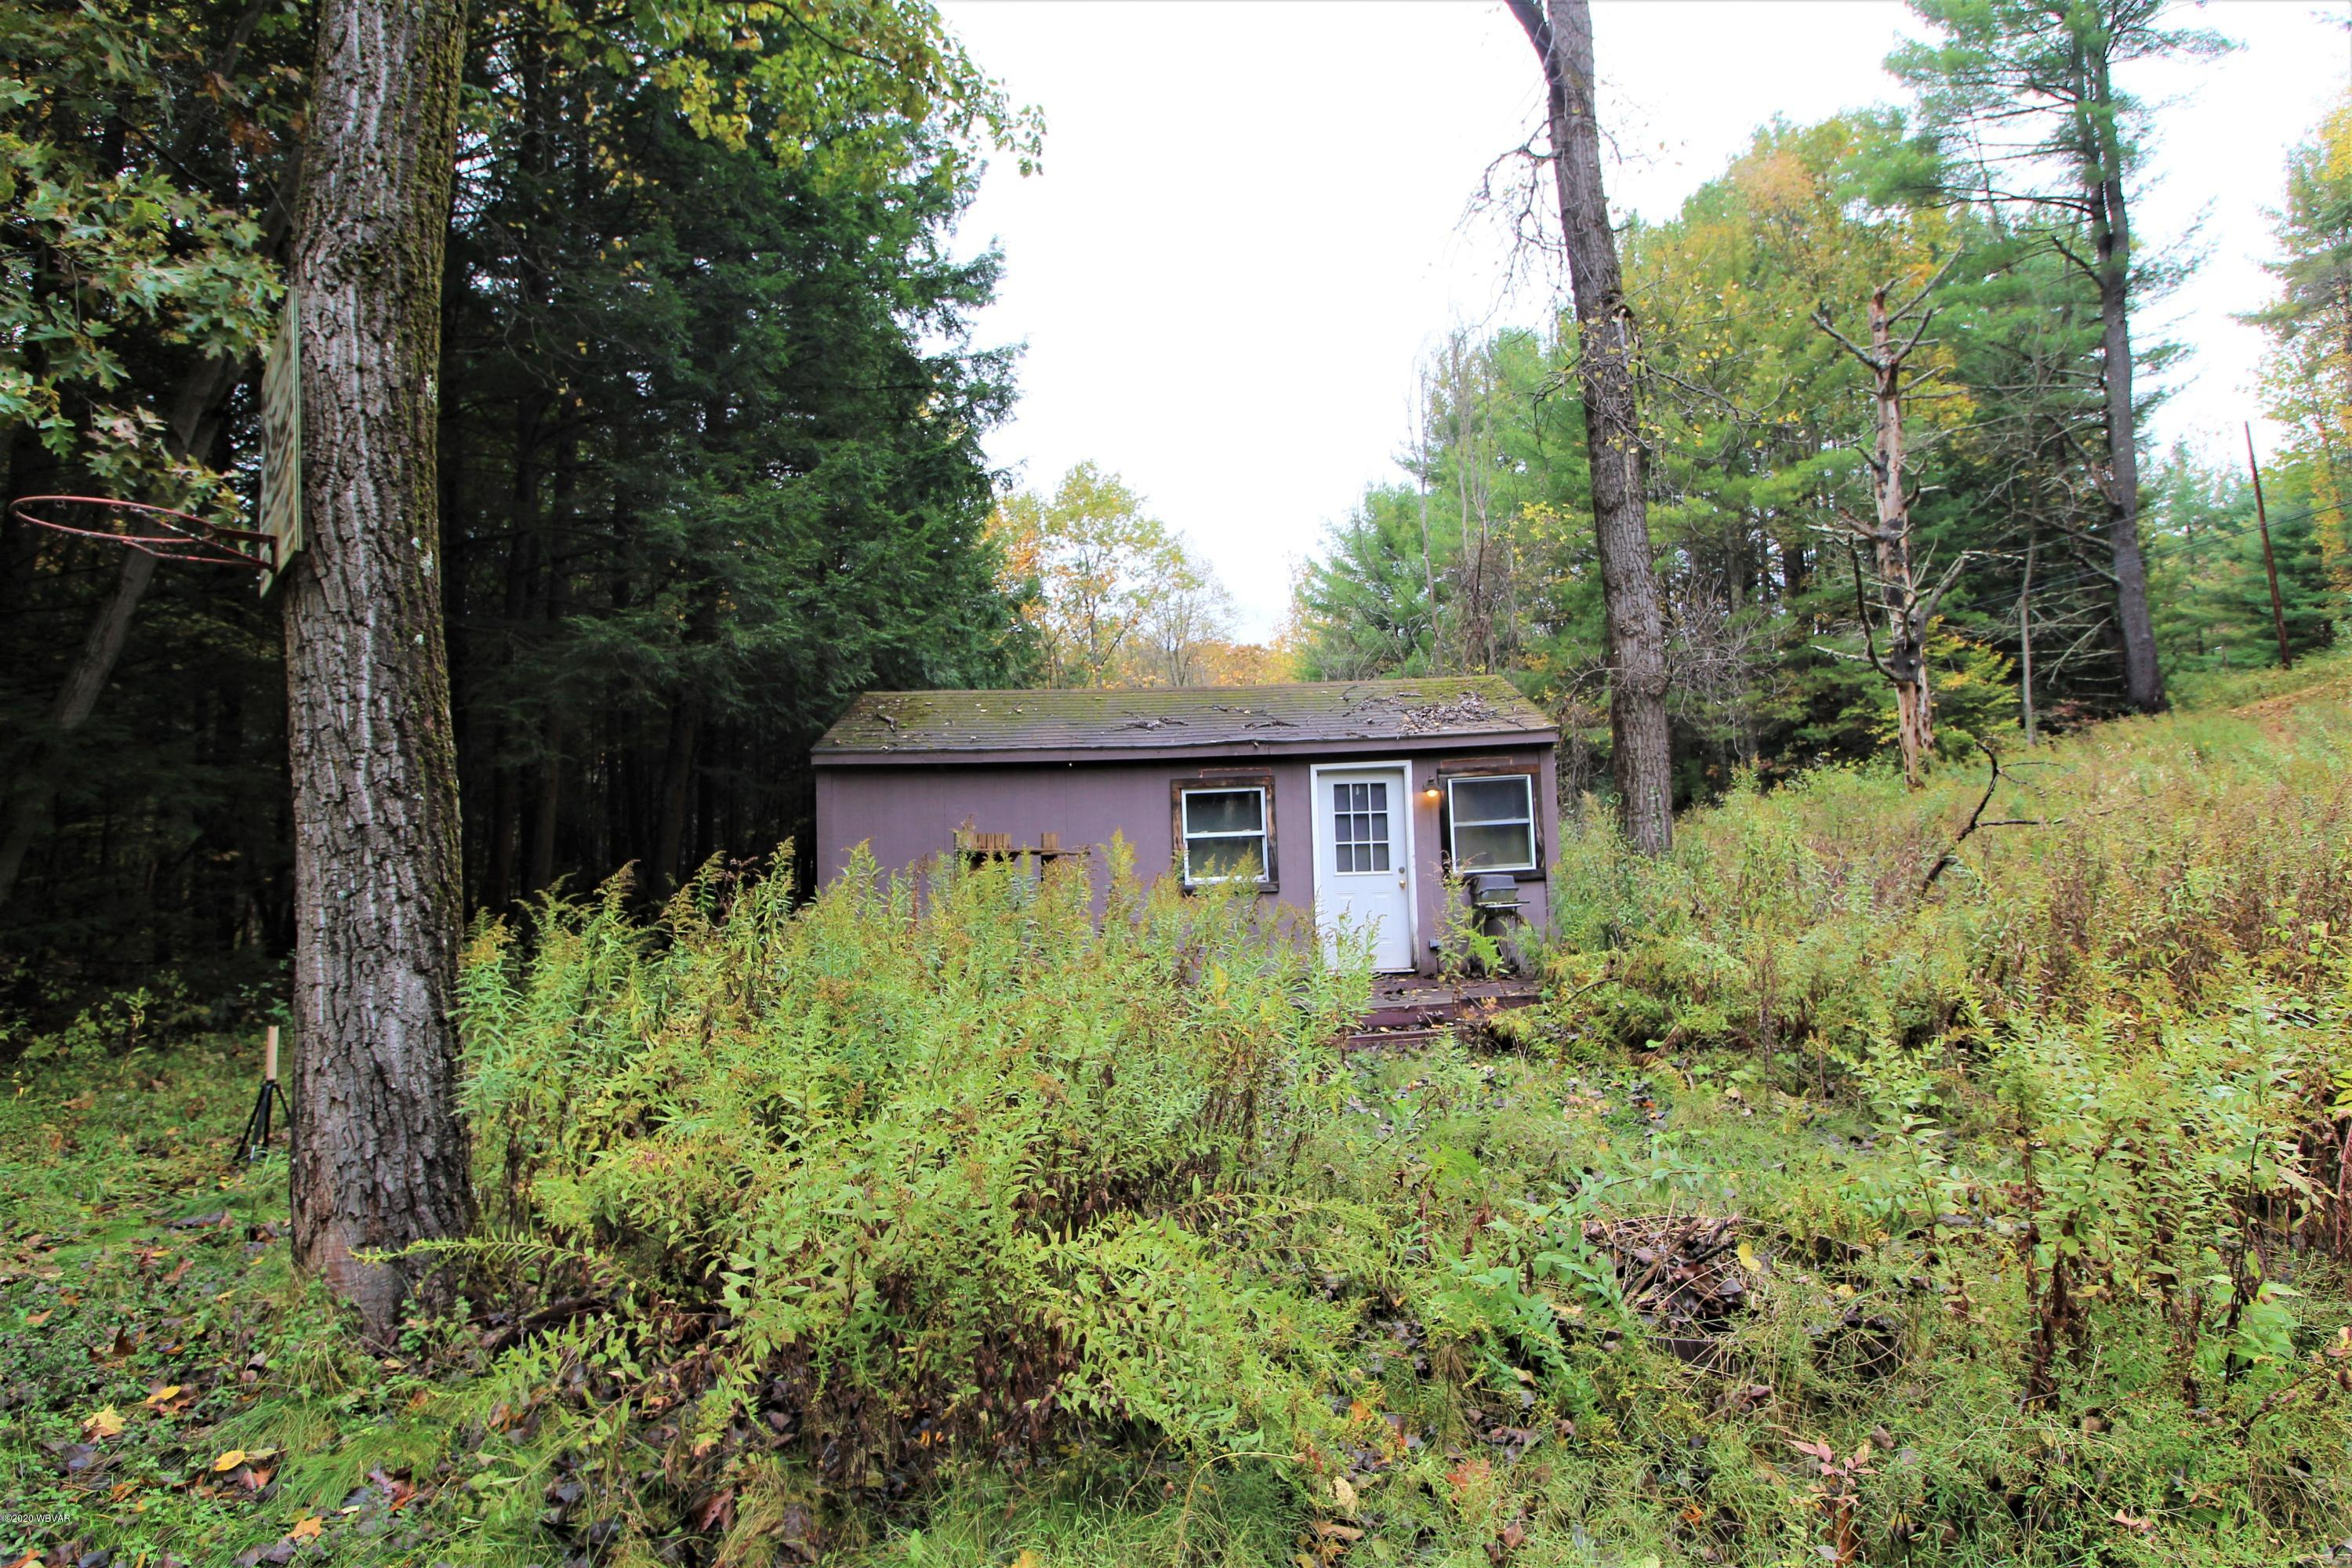 122 BARBER HOLLOW ROAD, Tioga, PA 16946, 1 Bedroom Bedrooms, ,Cabin/vacation home,For sale,BARBER HOLLOW,WB-91503